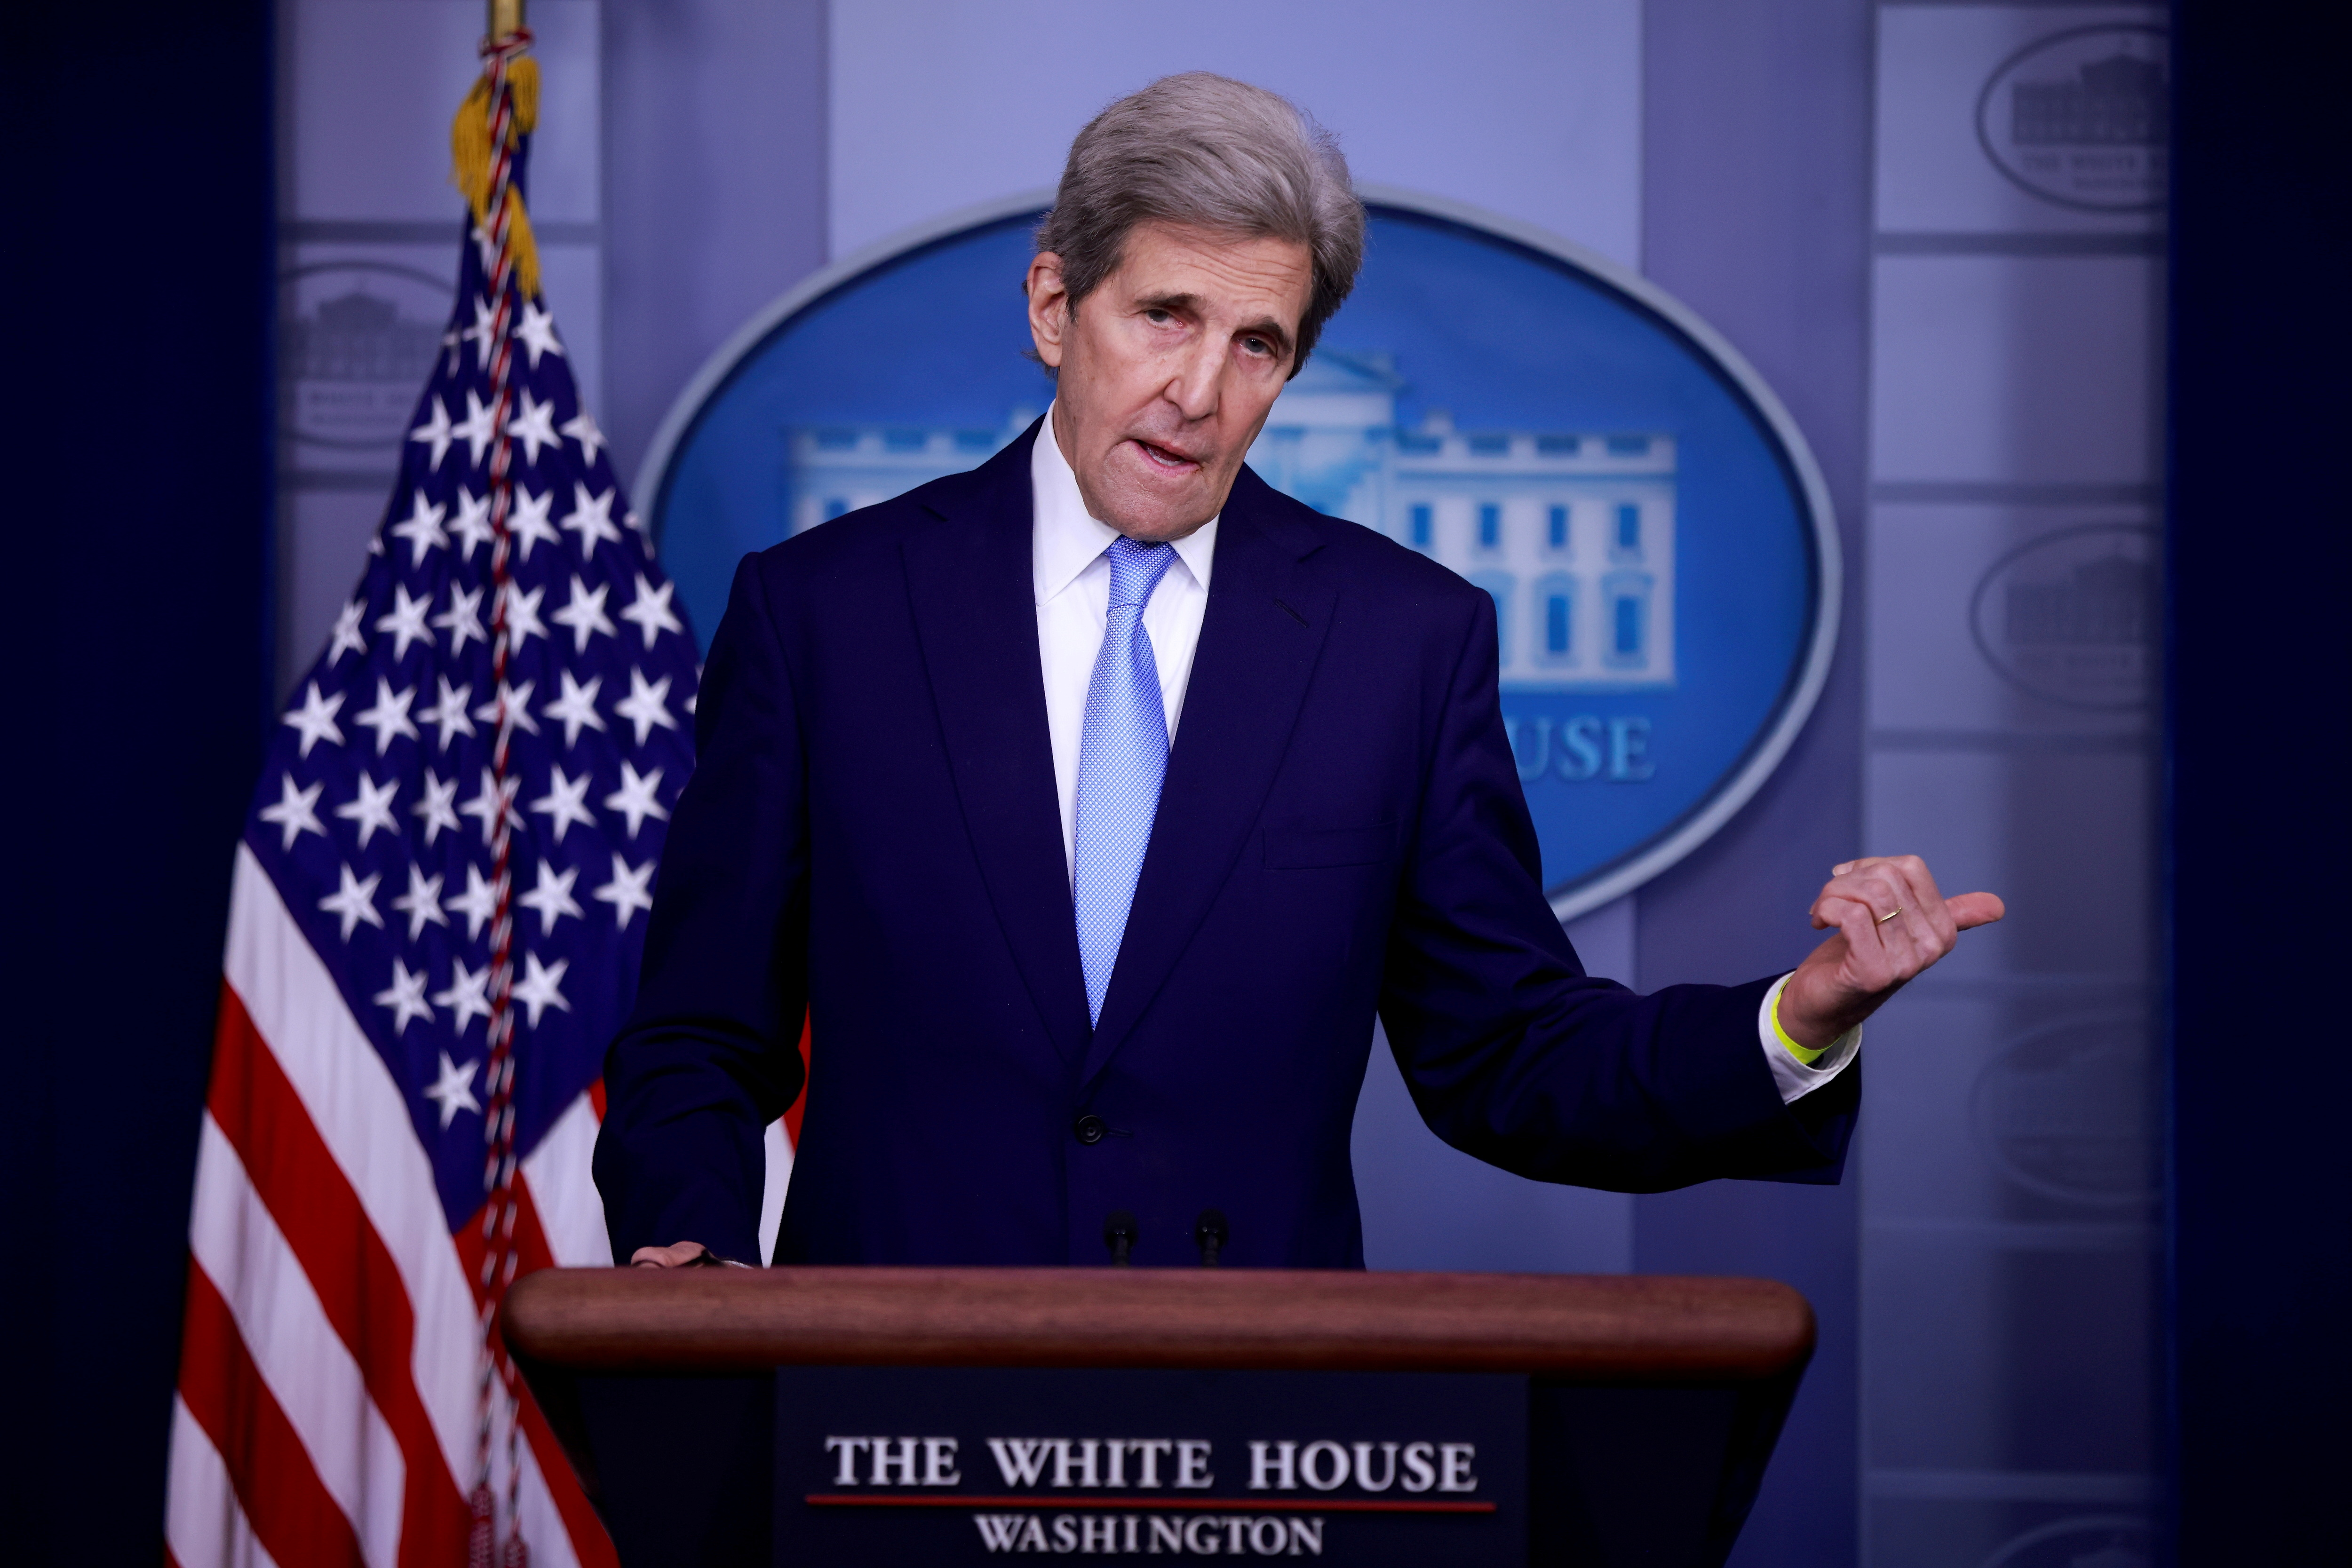 John Kerry, Special Presidential Envoy for Climate, delivers remarks during a press briefing at the White House in Washington, U.S., April 22, 2021. REUTERS/Tom Brenner